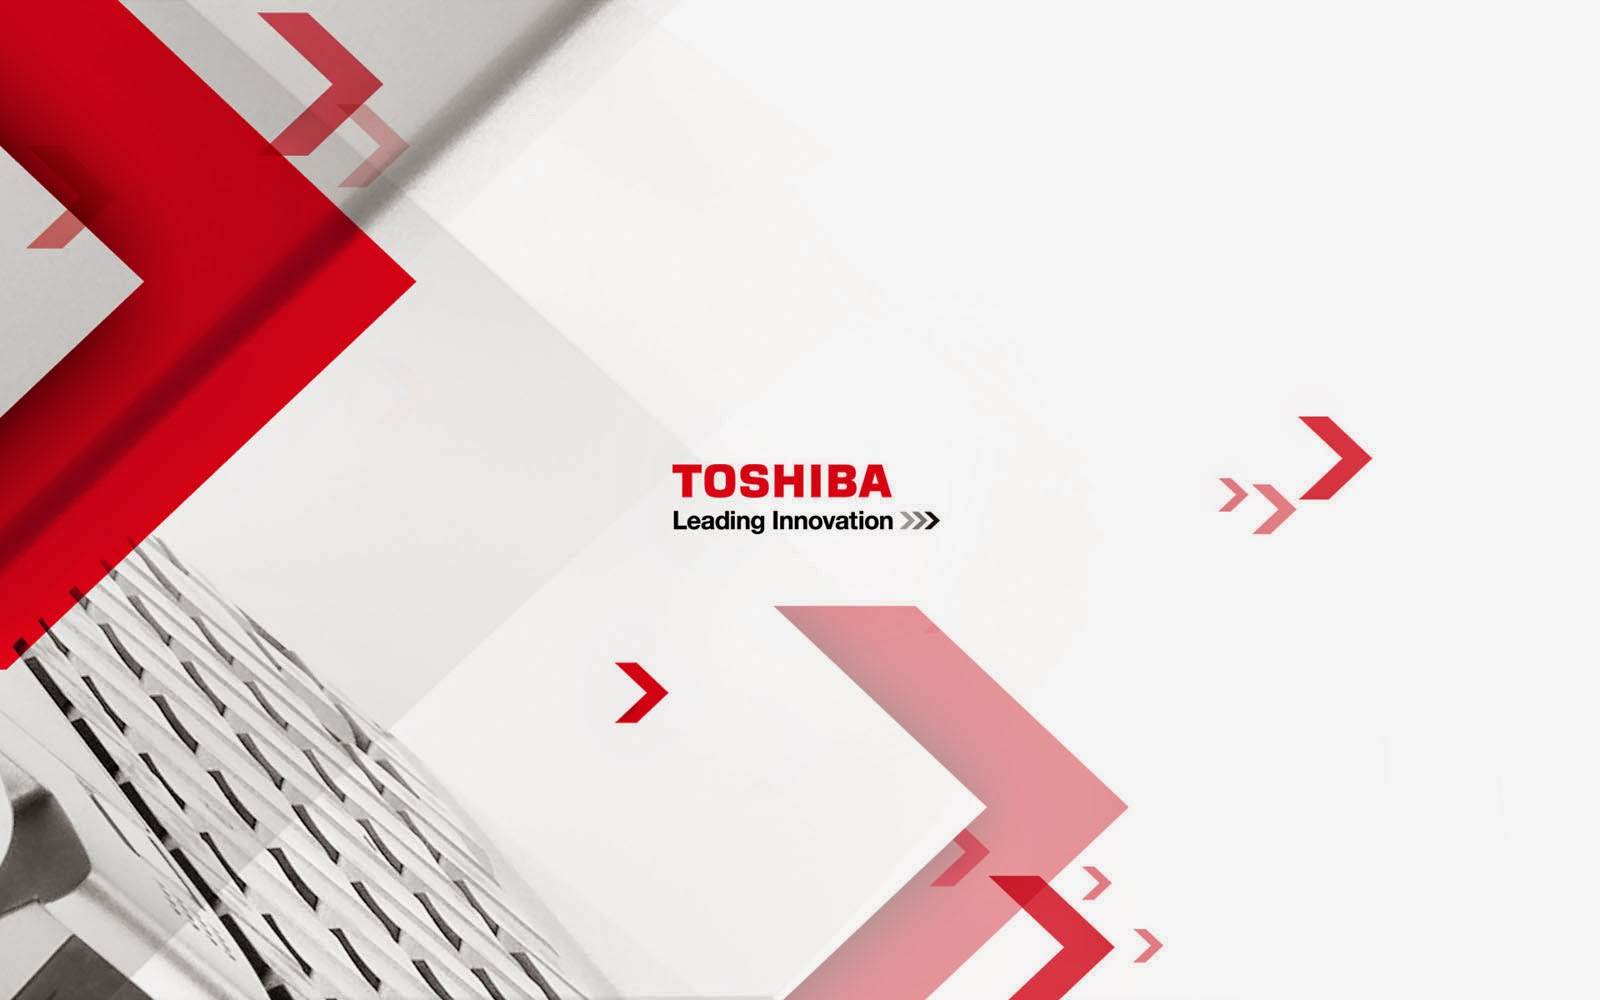 hq toshiba wallpaper full hd pictures